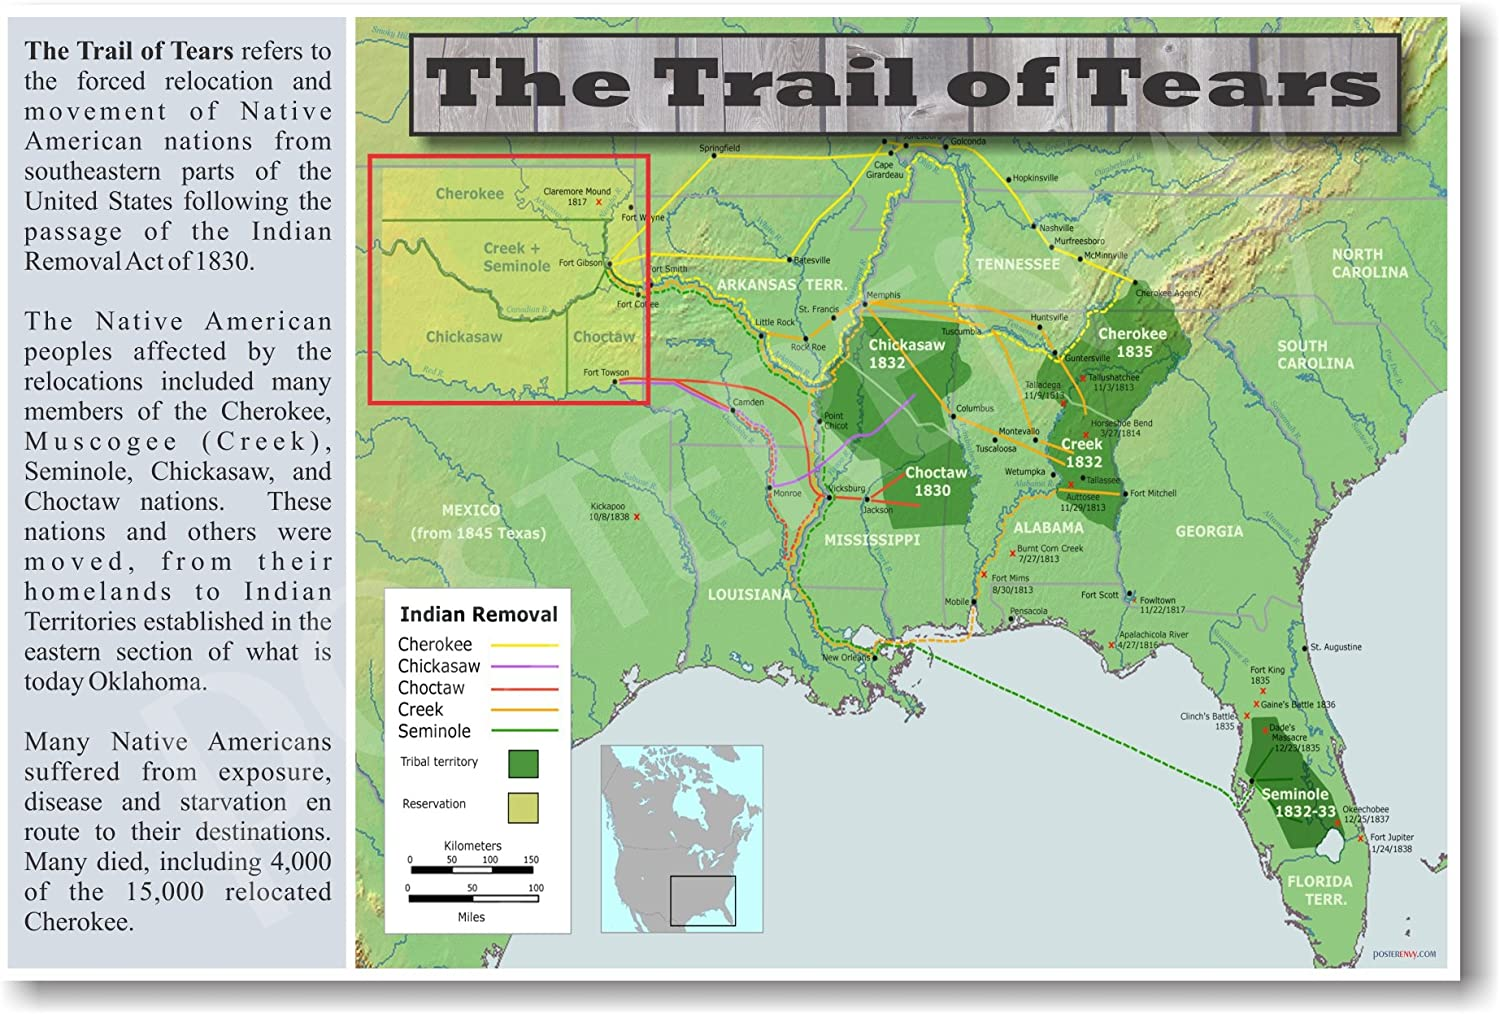 Amazon.com: The Native American Trail of Tears - Social Studies Classroom  Poster: Prints: Posters & Prints